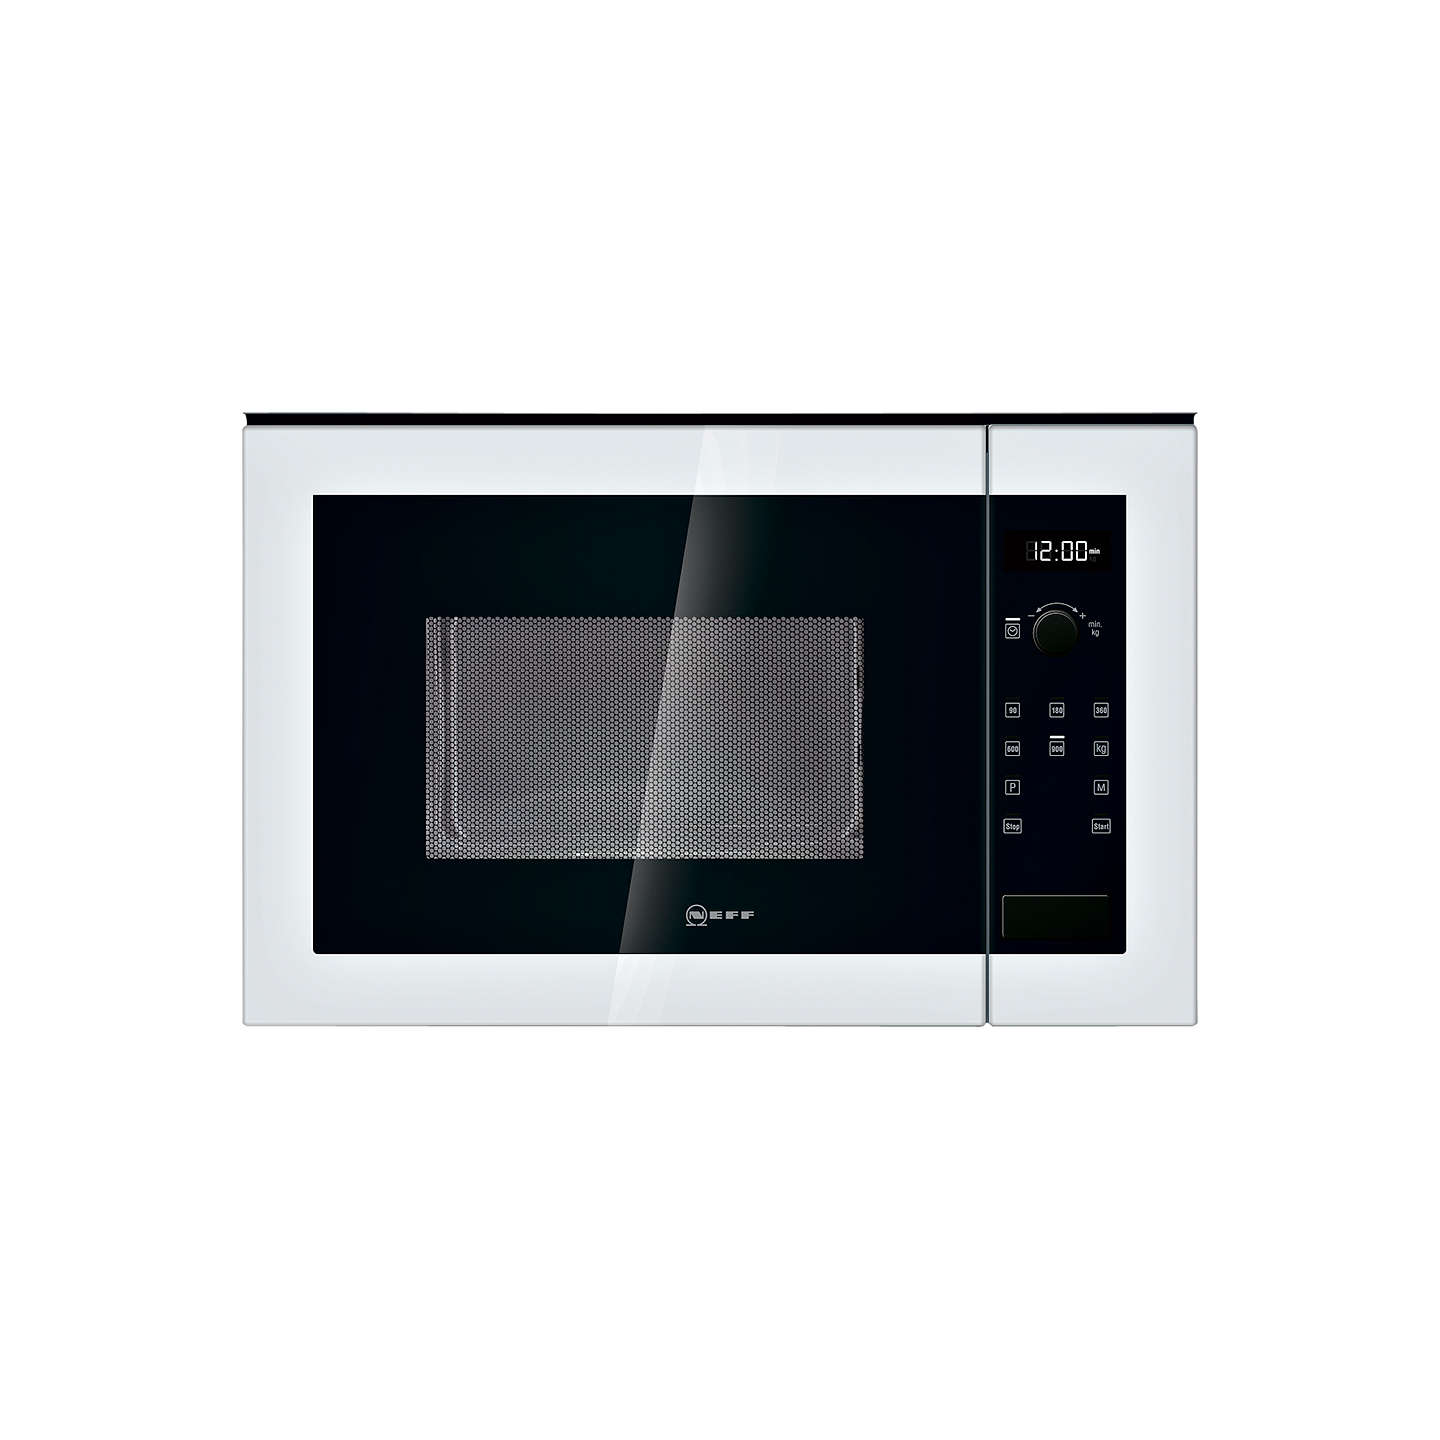 Neff H12we60w0g Built In Microwave Oven White Online At Johnlewis